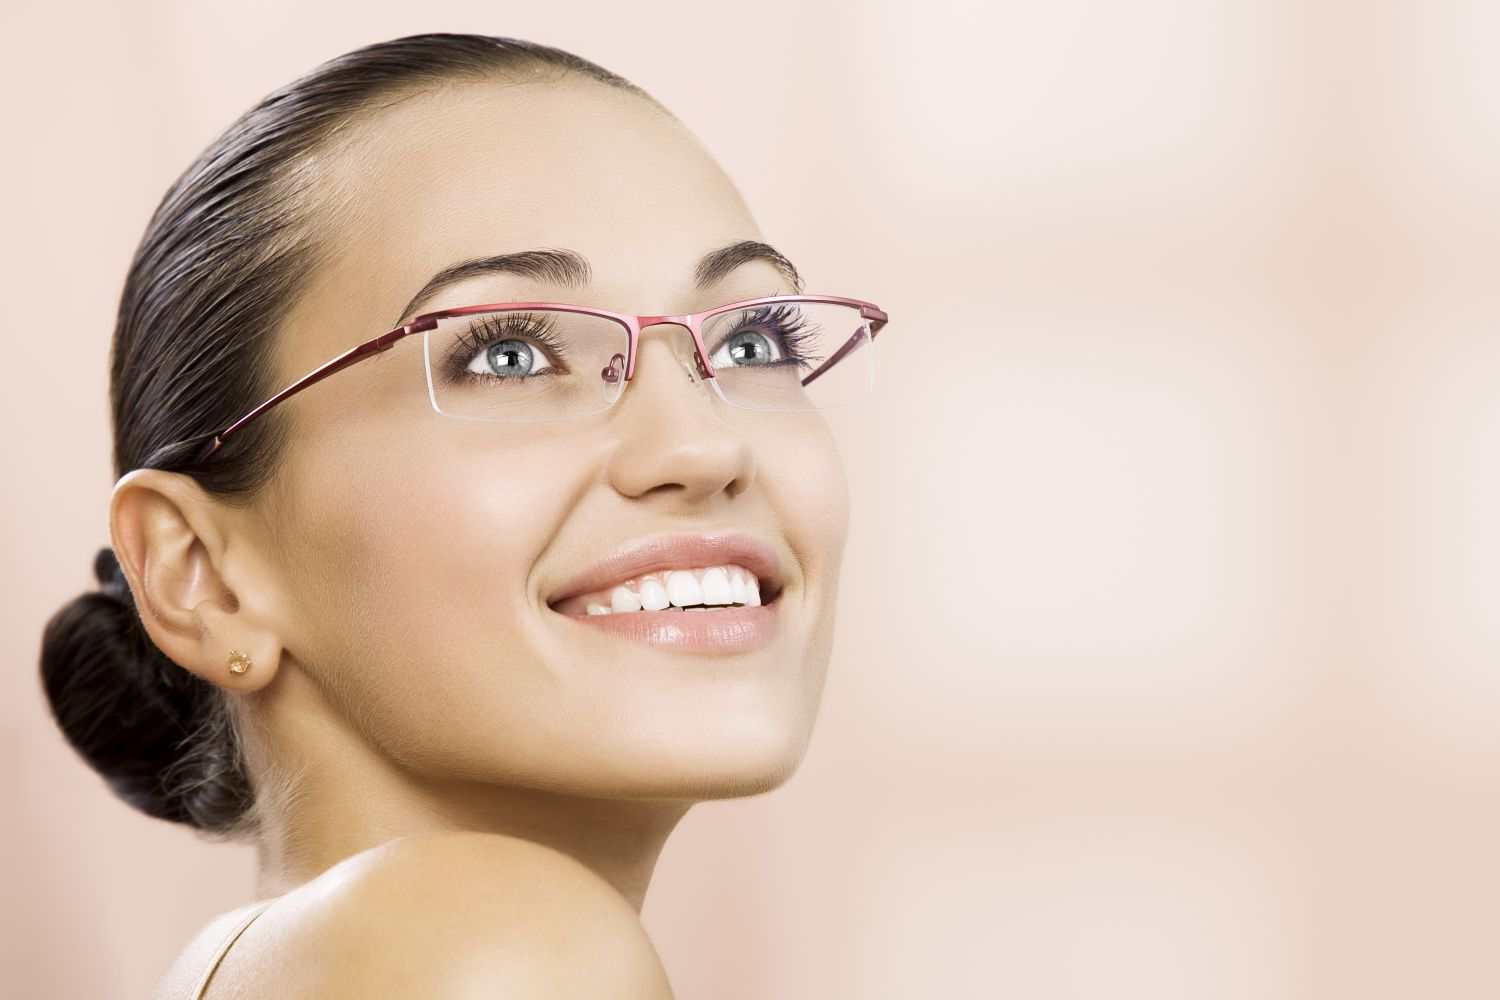 how to get rid of glasses marks under eyes